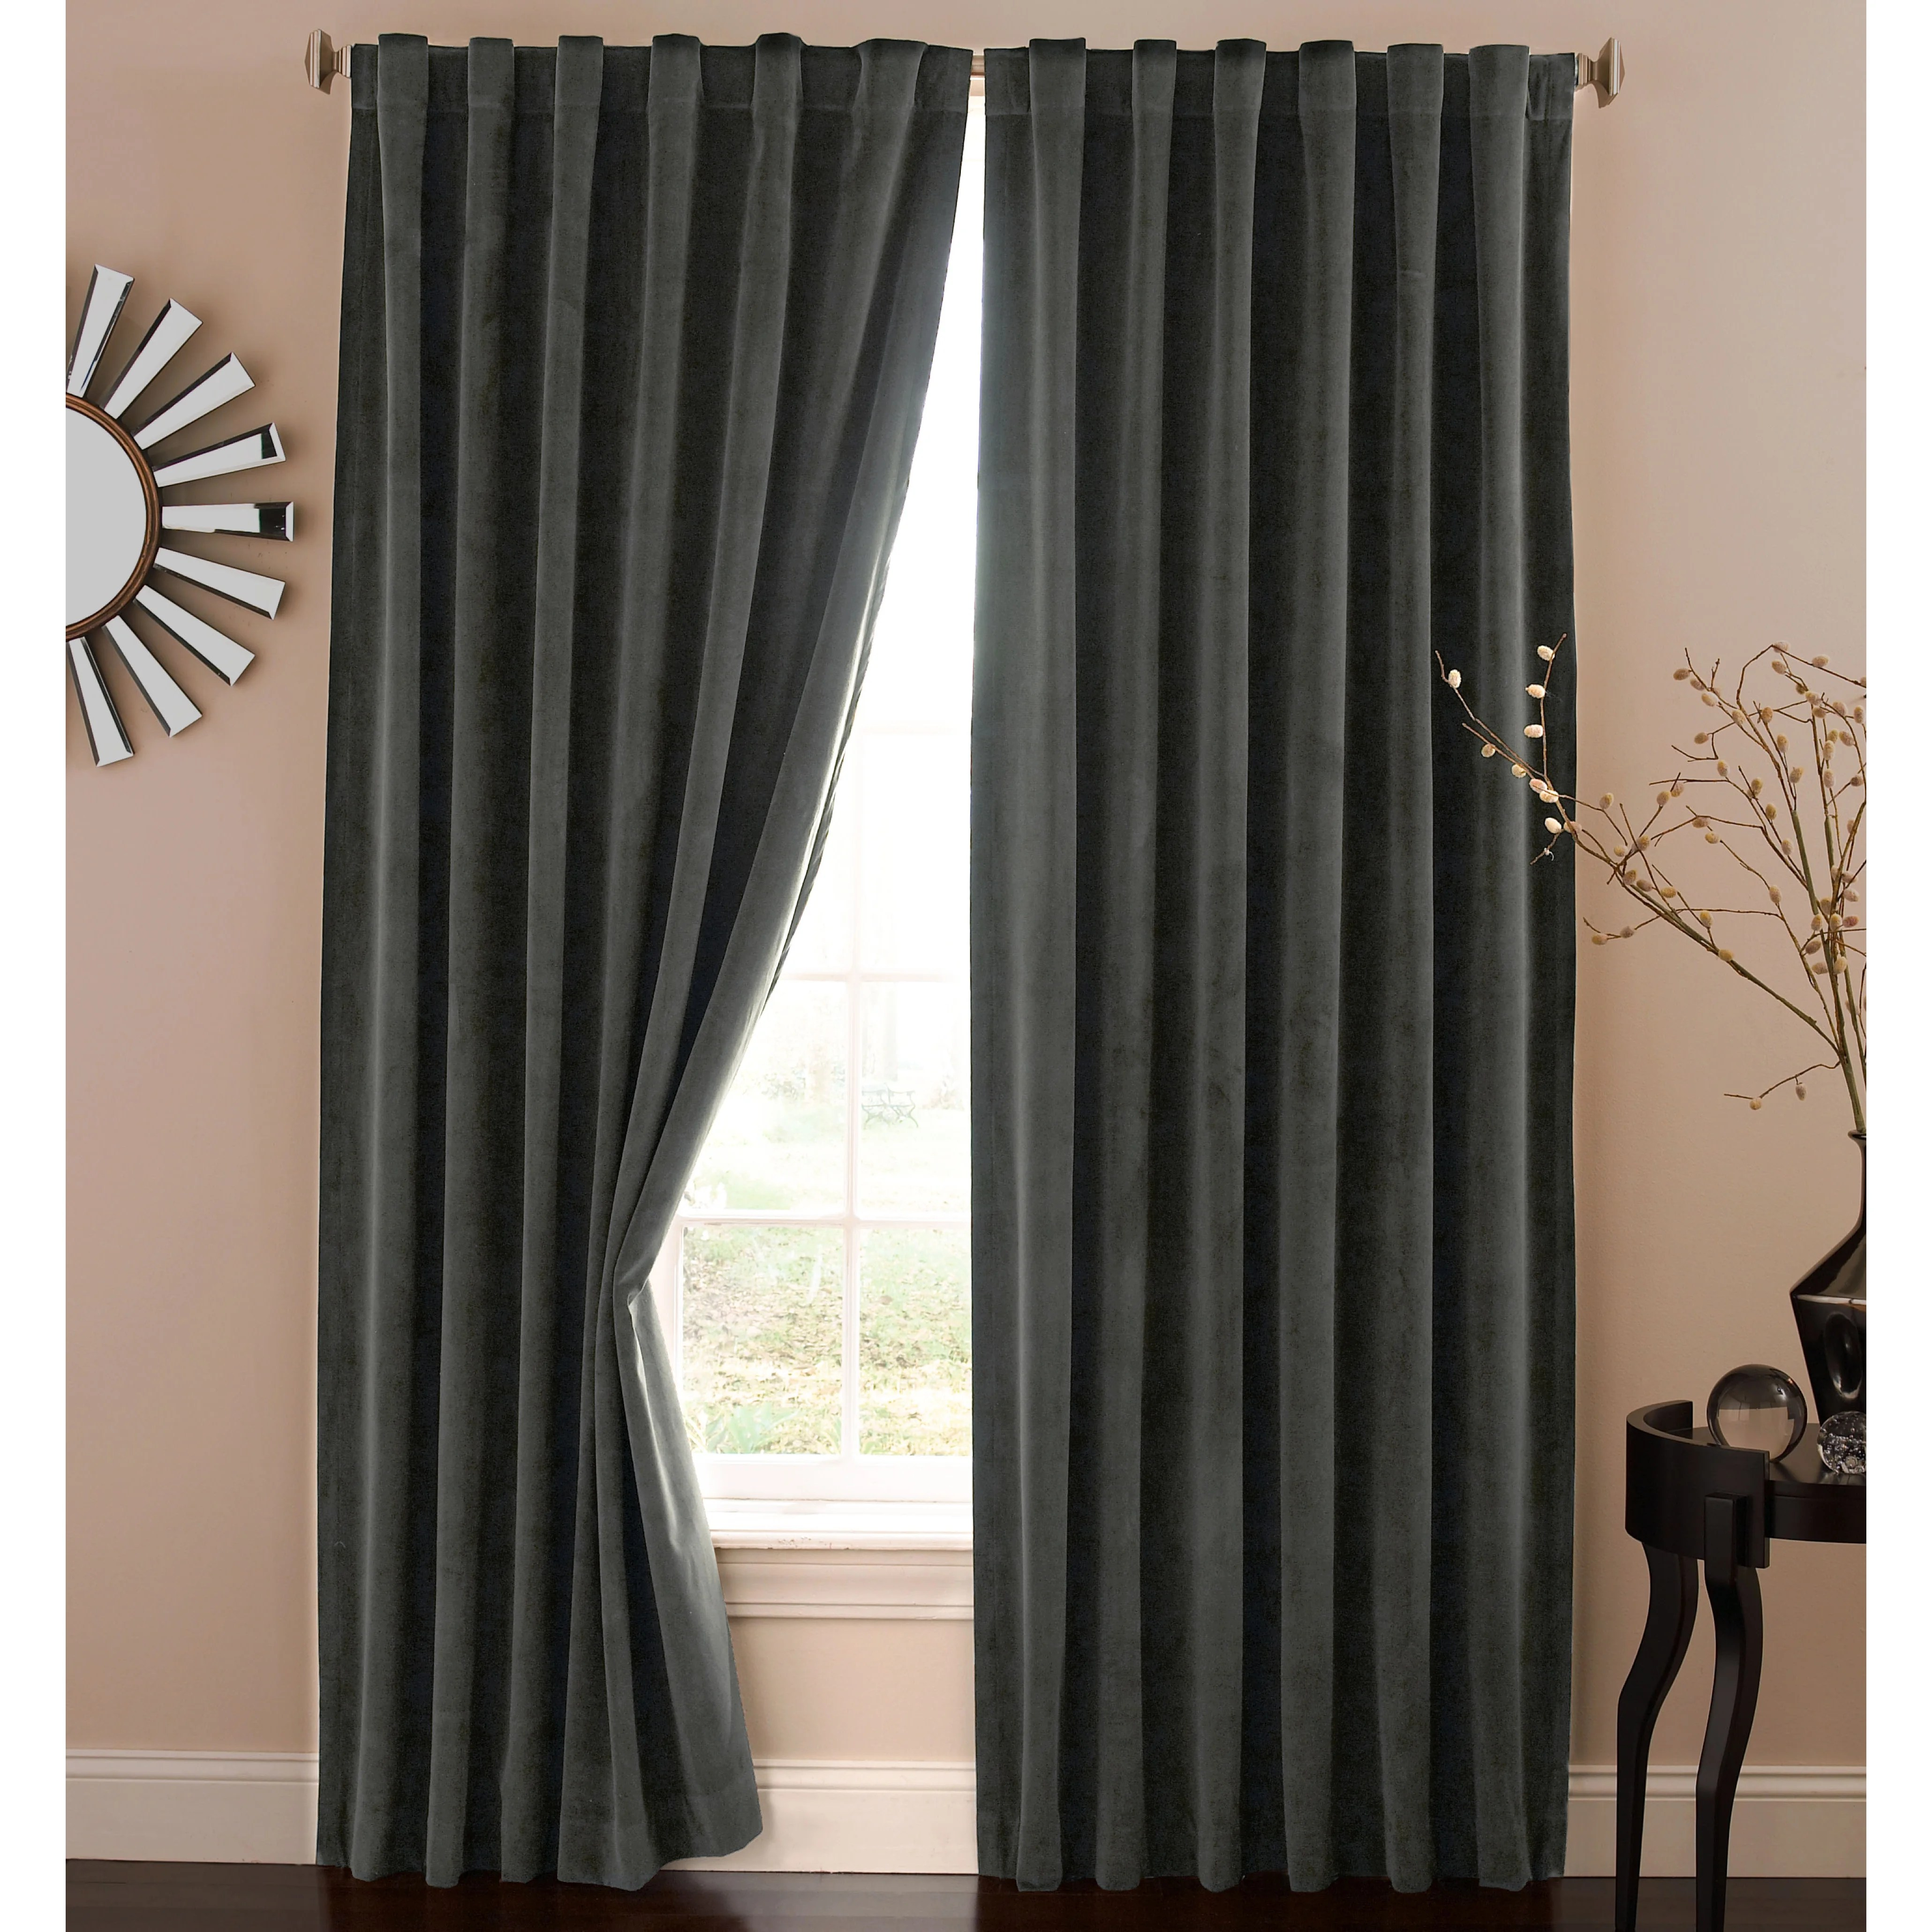 Absolute Zero™ Blackout Thermal Single Curtain Panel & Reviews